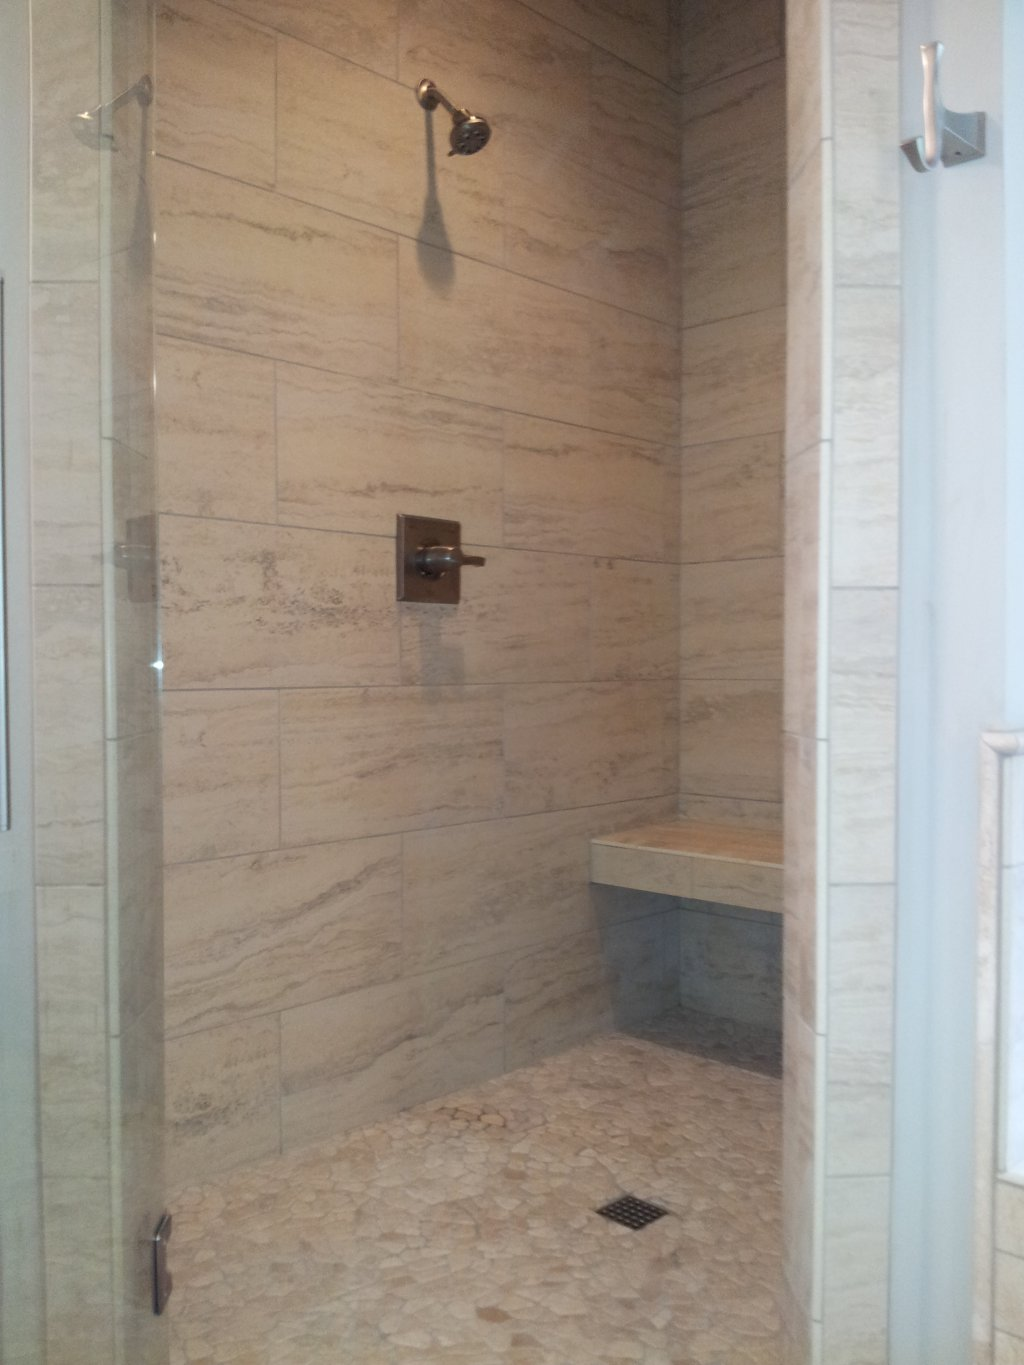 Chattanooga tile installation repair complete flooring service custom tile shower installation dailygadgetfo Choice Image